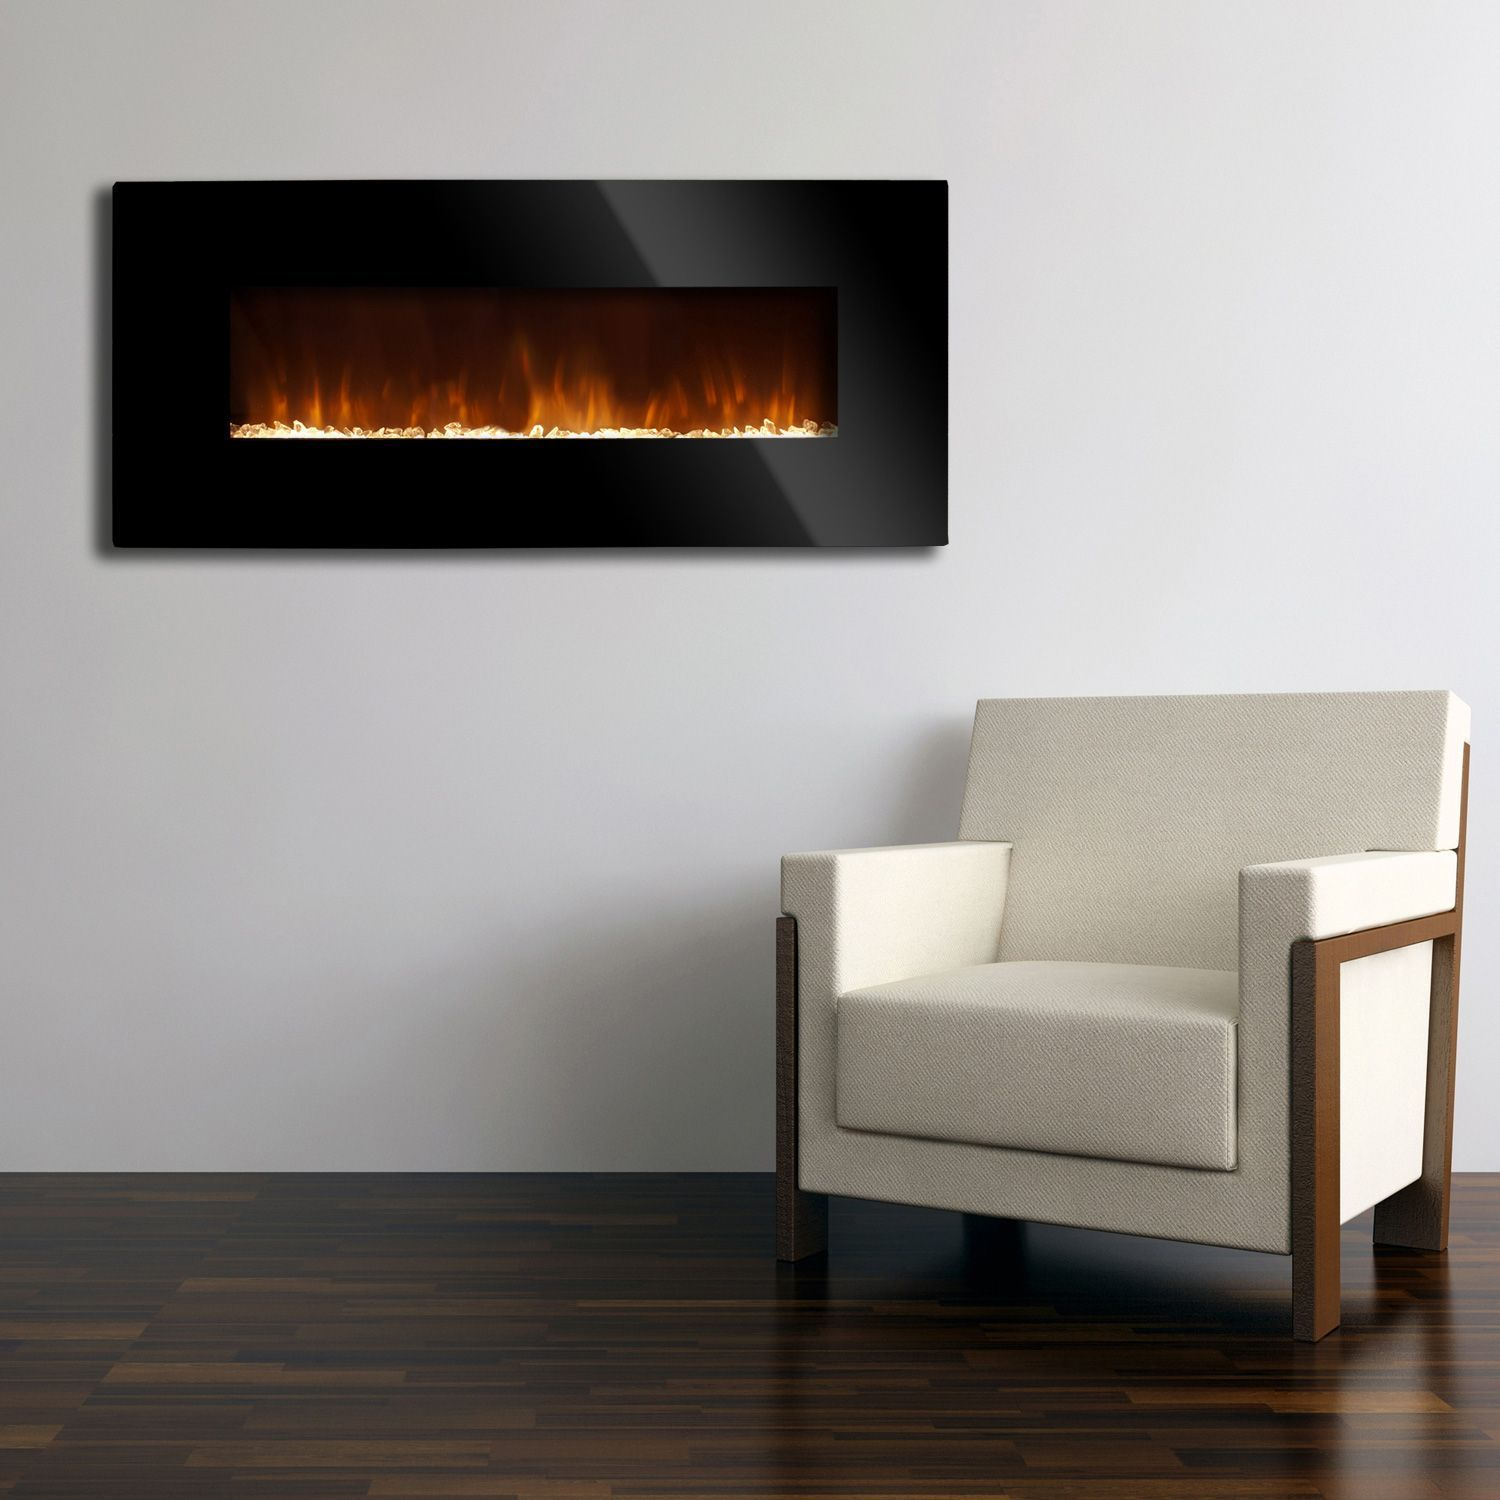 Wondrous Grand Aspirations 50 Inch Wall Unit Fireplace Original Home Interior And Landscaping Ponolsignezvosmurscom